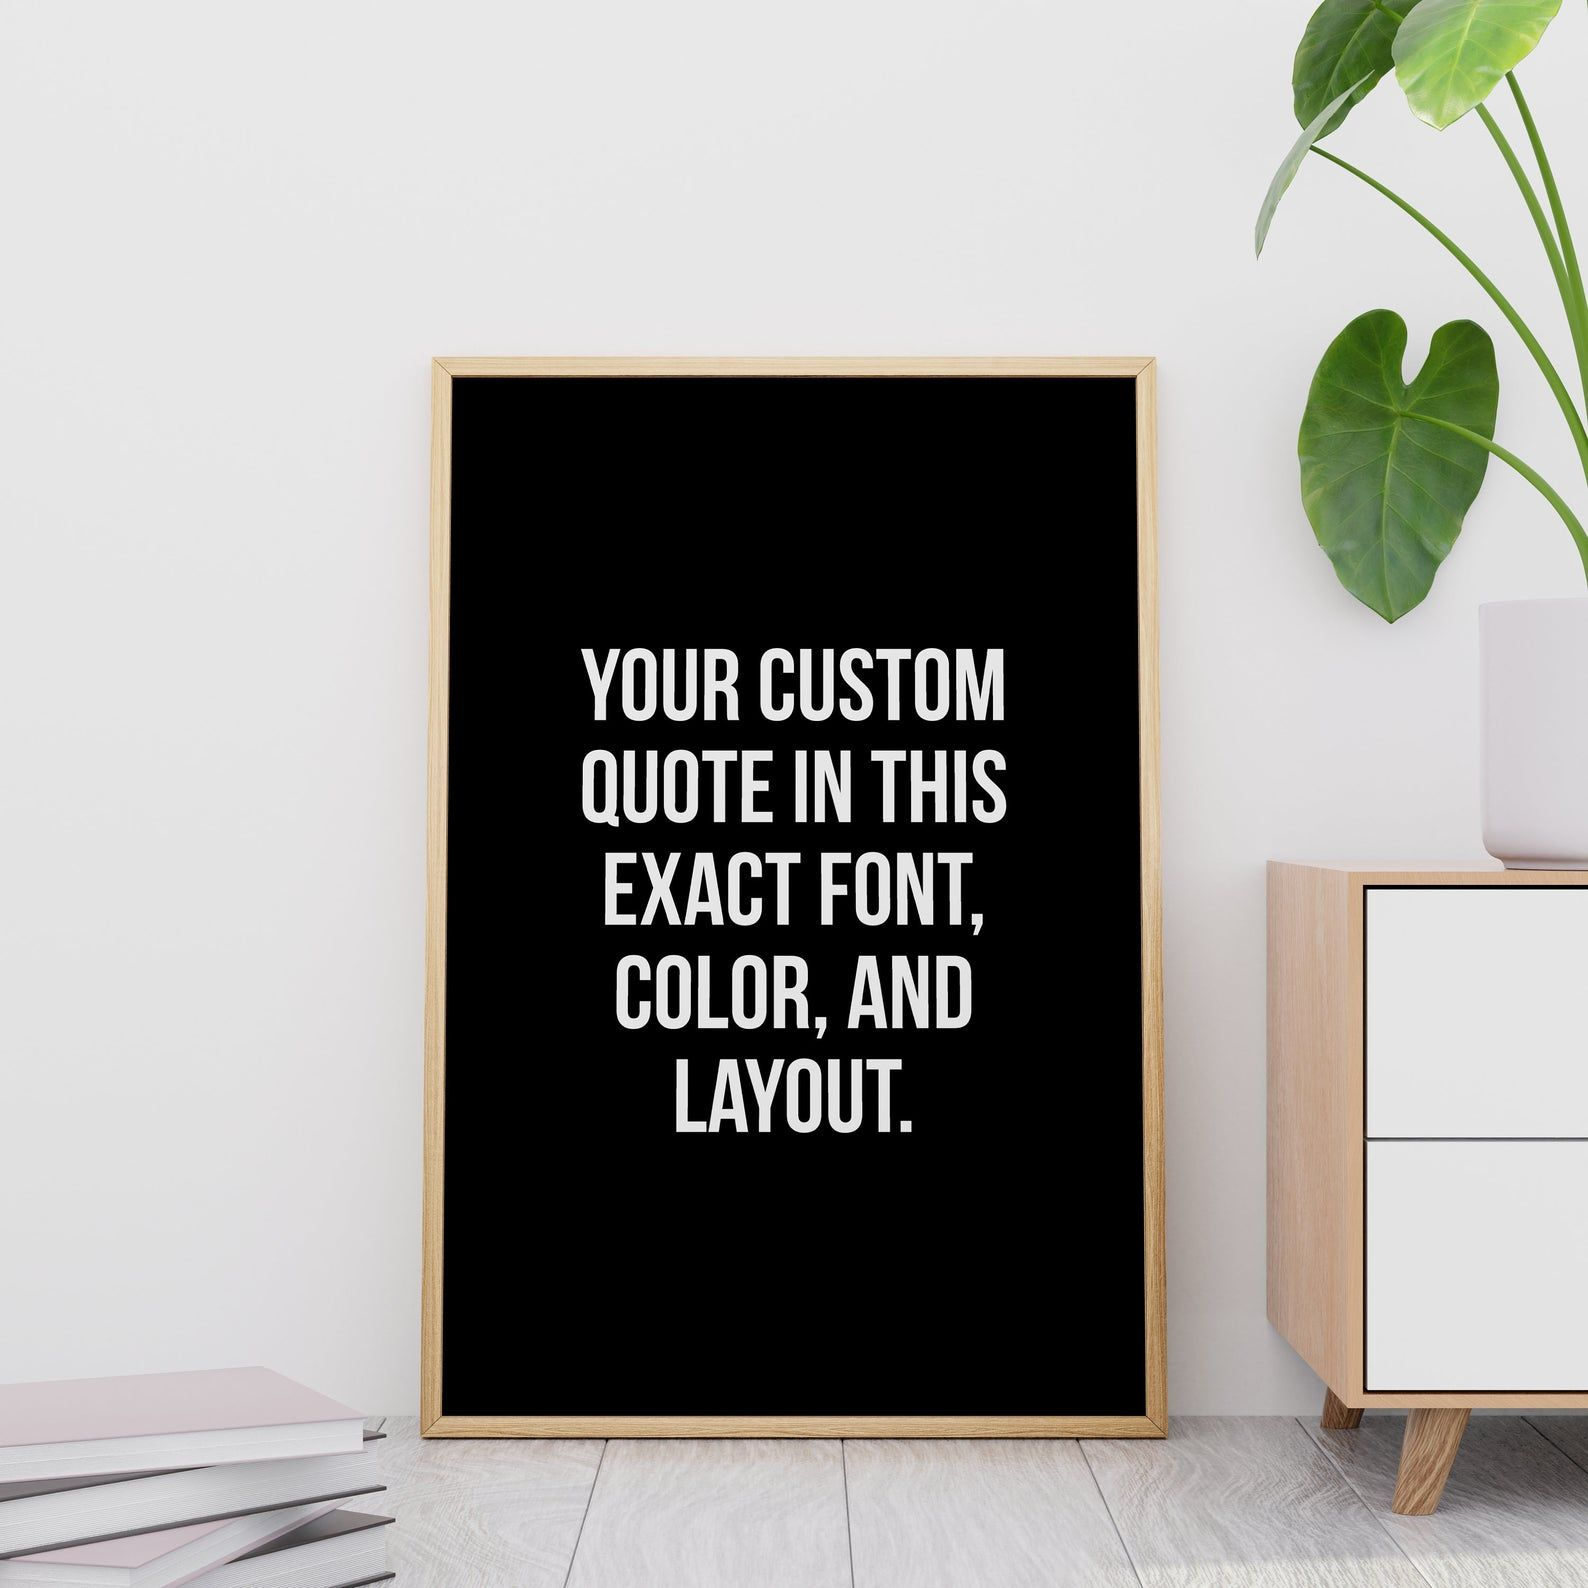 Custom Signs Printable Wall Art Custom Quote Print Black And Etsy In 2020 Custom Quote Print Custom Quotes Personalized Quotes